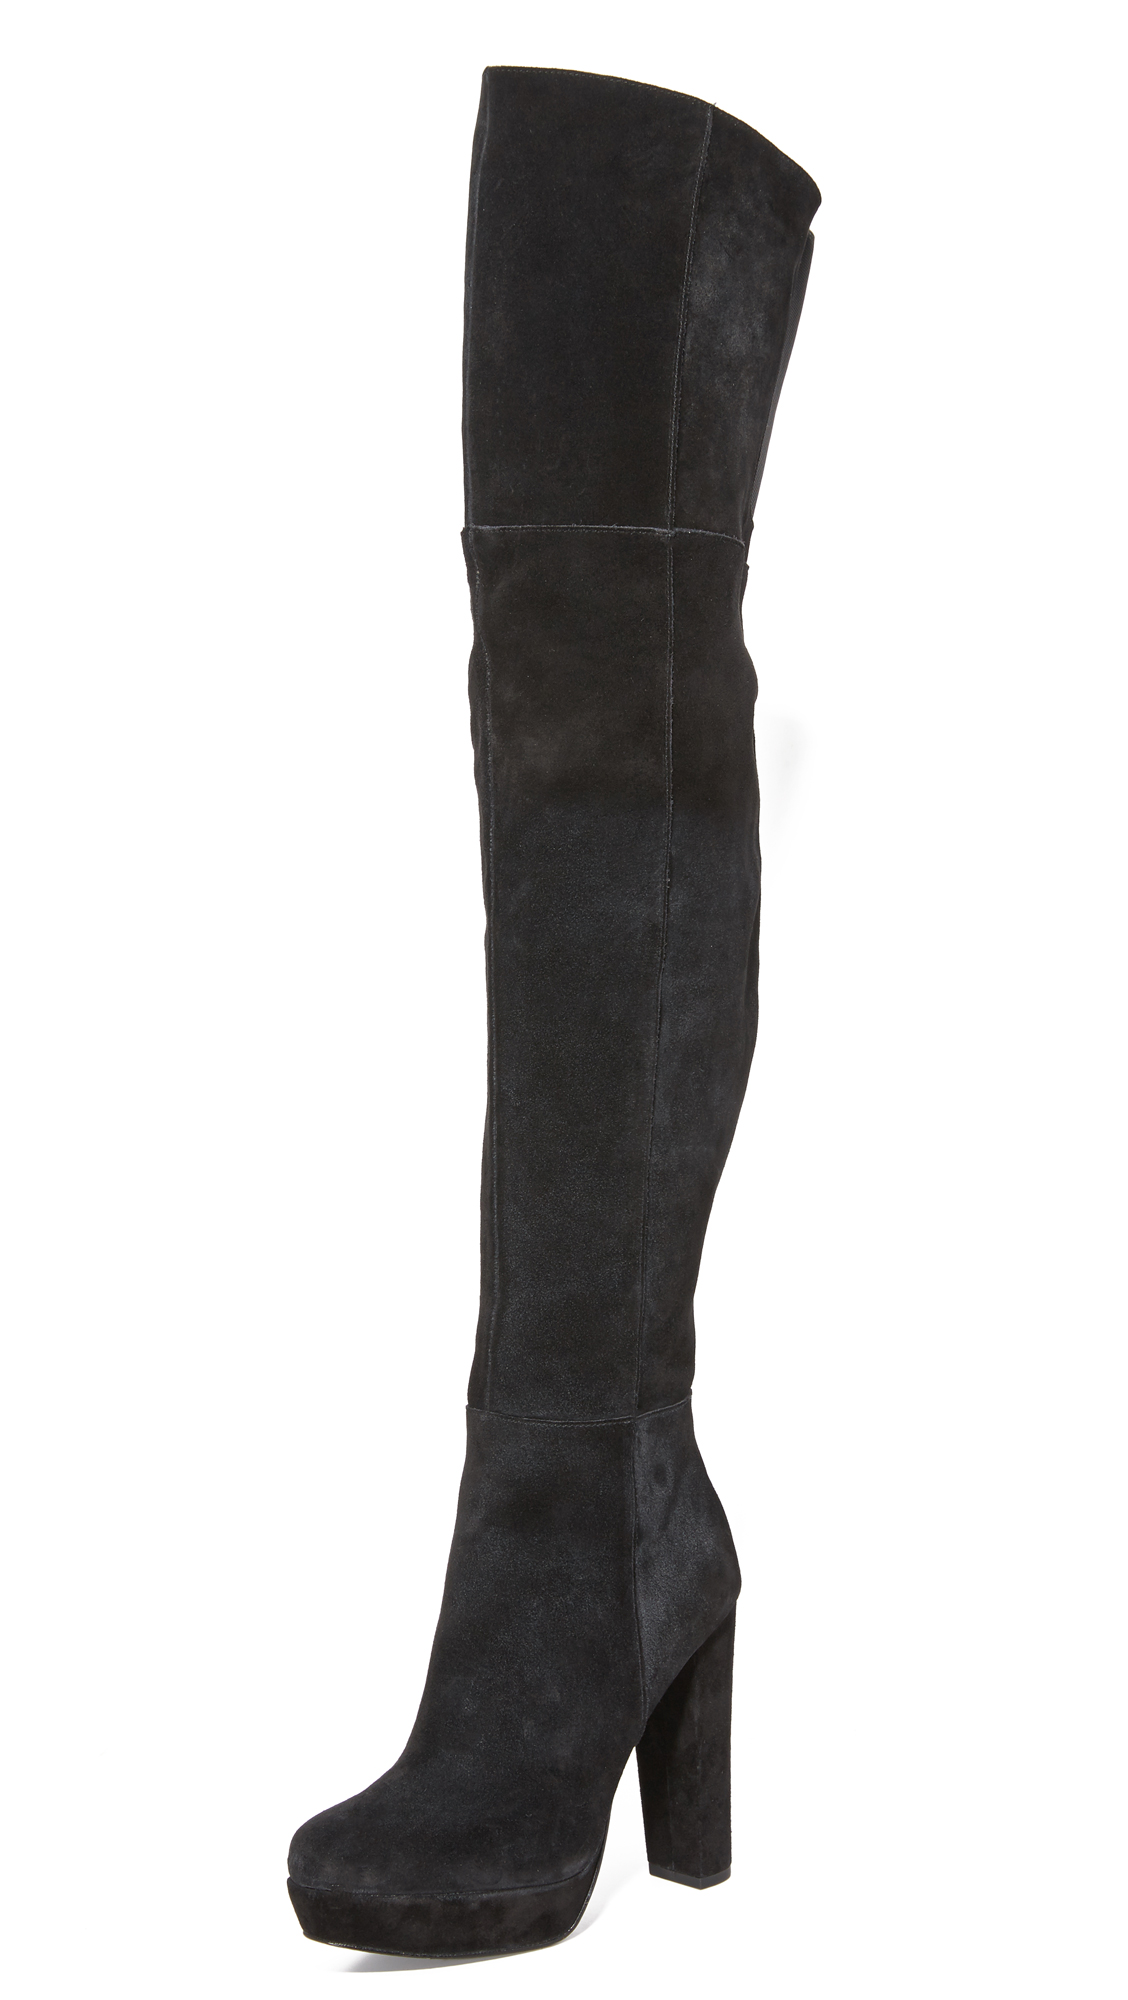 Alice + Olivia Halle Over The Knee Boots - Black